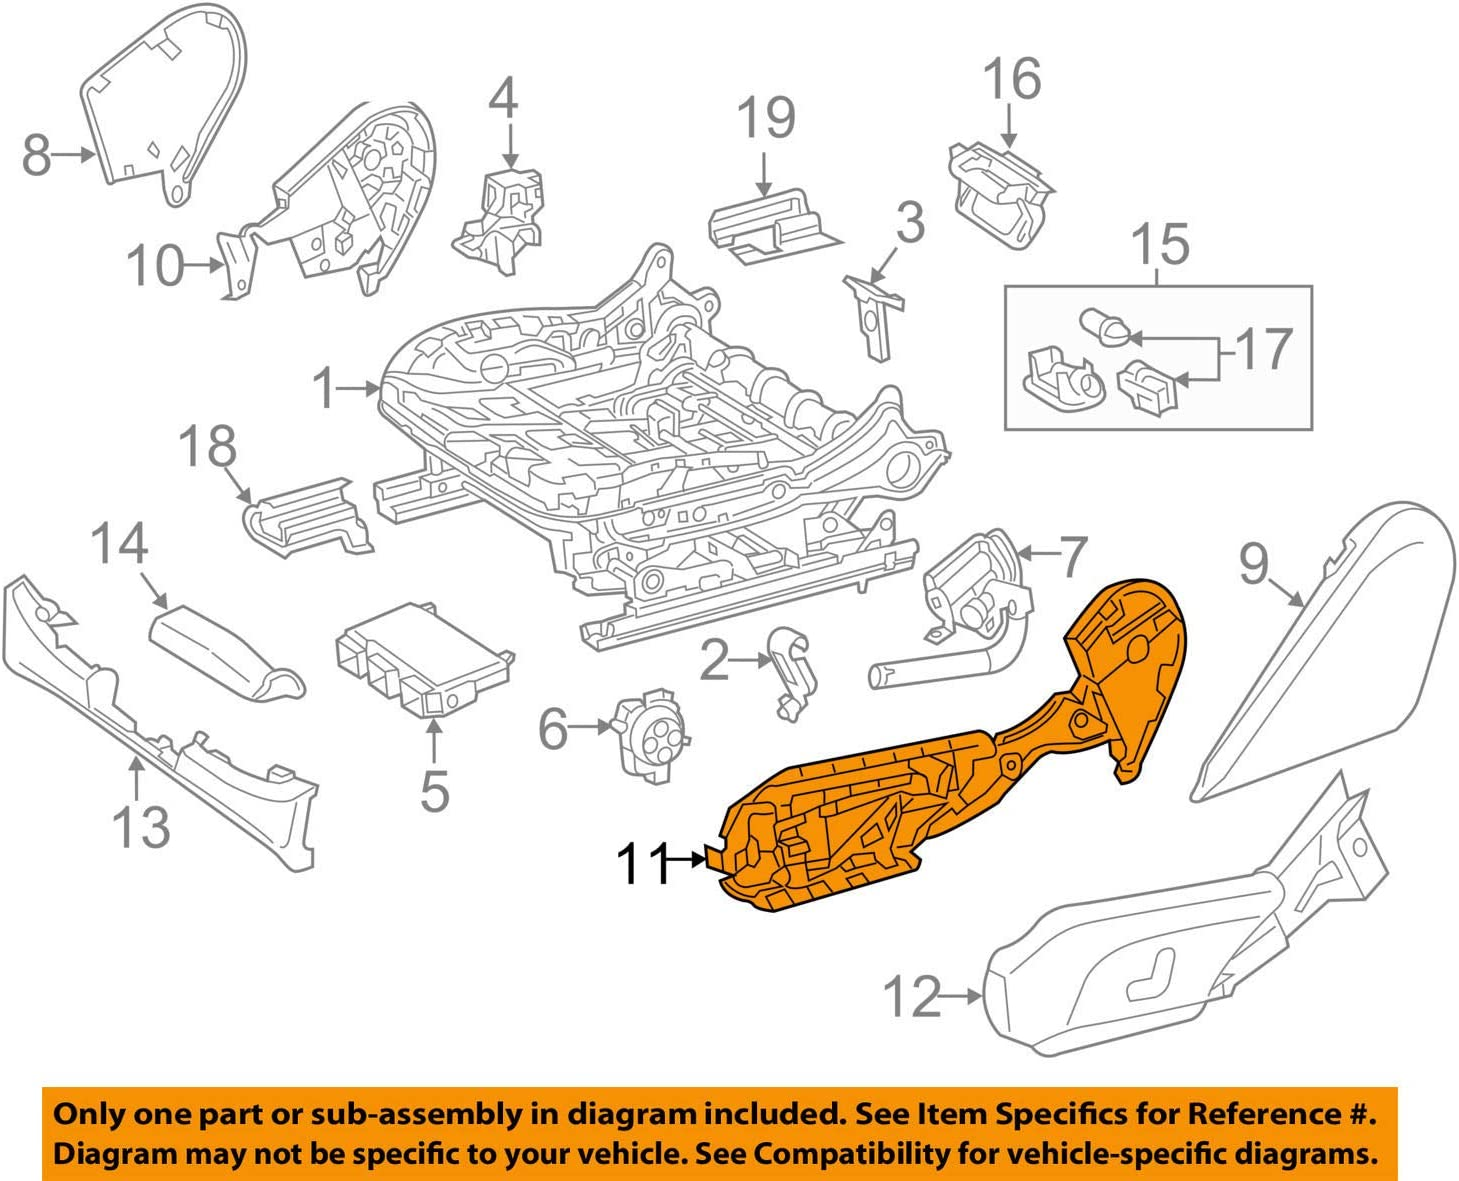 Mercedes Benz Genuine Recline Cover Reinforcement 205-918-00-16-9051